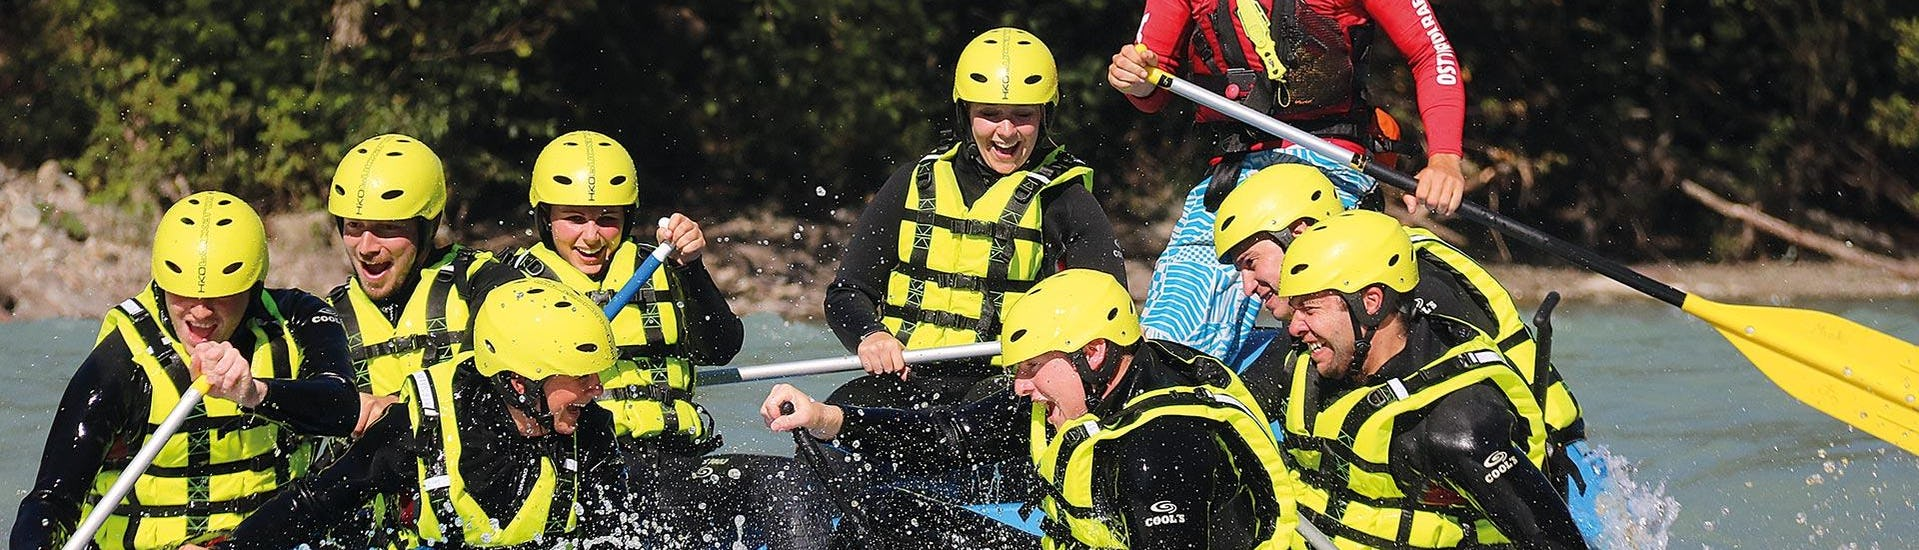 rafting-on-the-moll-river-for-families-cam-cool-hero